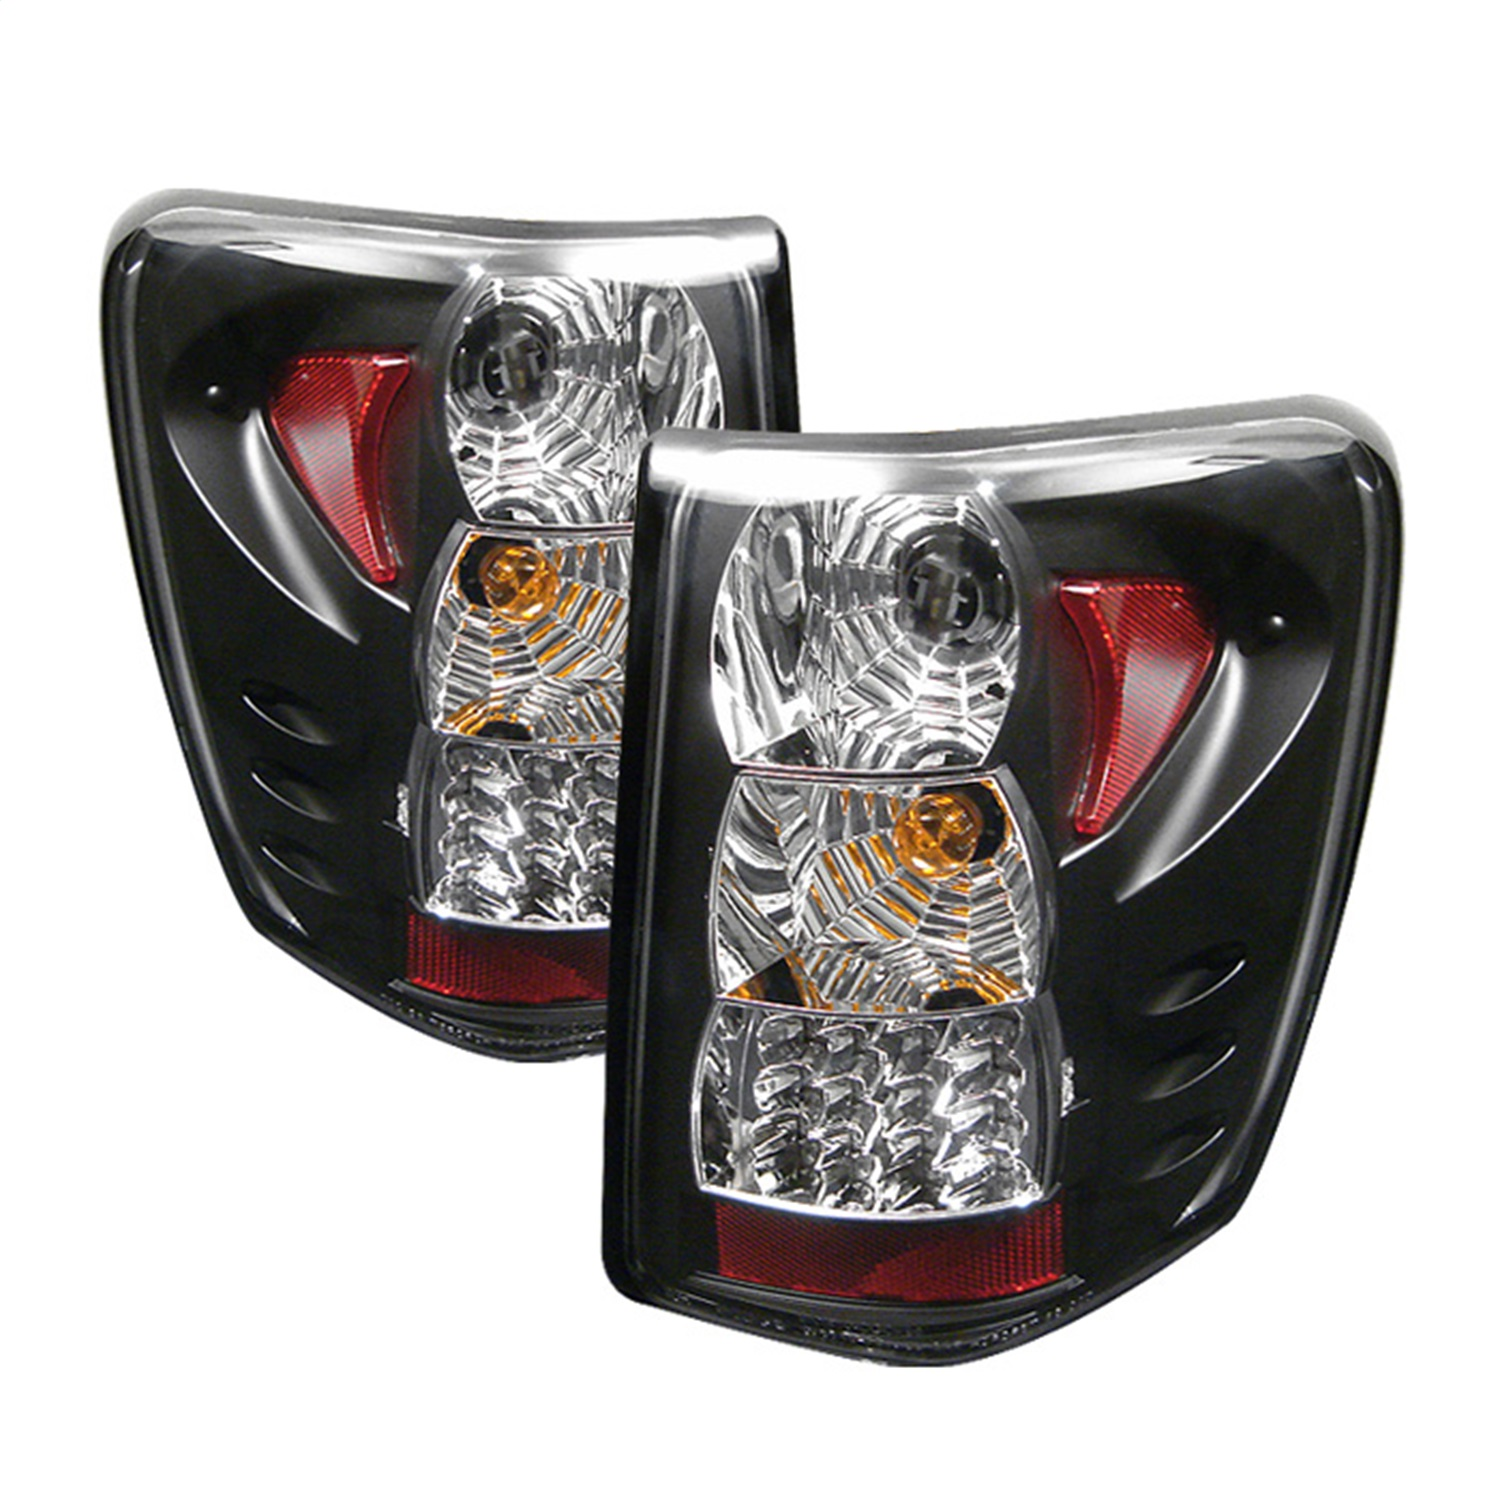 Spyder Auto 5005663 LED Tail Lights Fits 99-04 Grand Cherokee